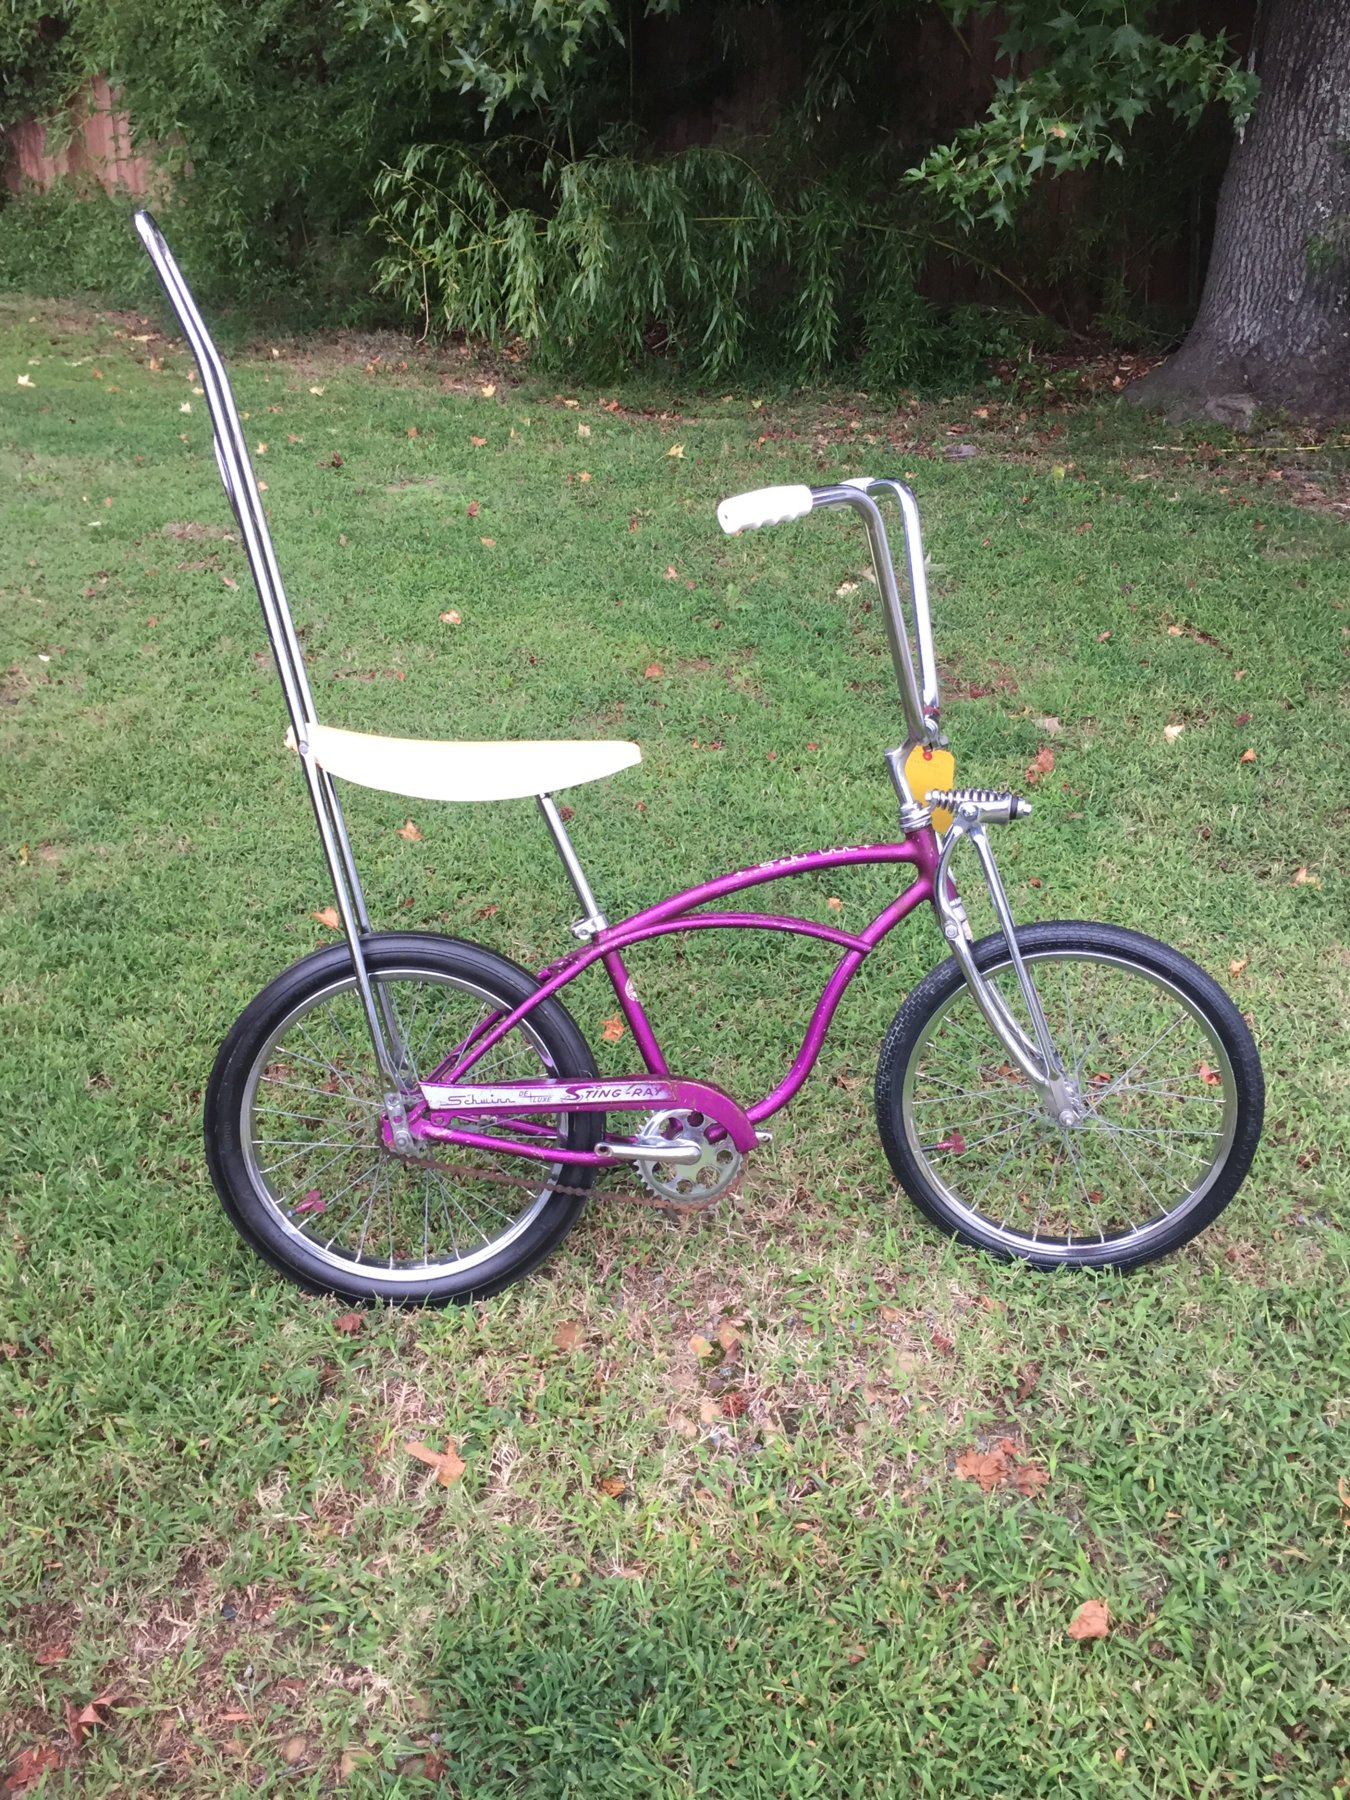 2adfe612920 pretty rare frame N4 in opal violet with schwinn super deluxe springer and  schwinn accessorie sissy bar rear slik dated 4th quarter of 1964